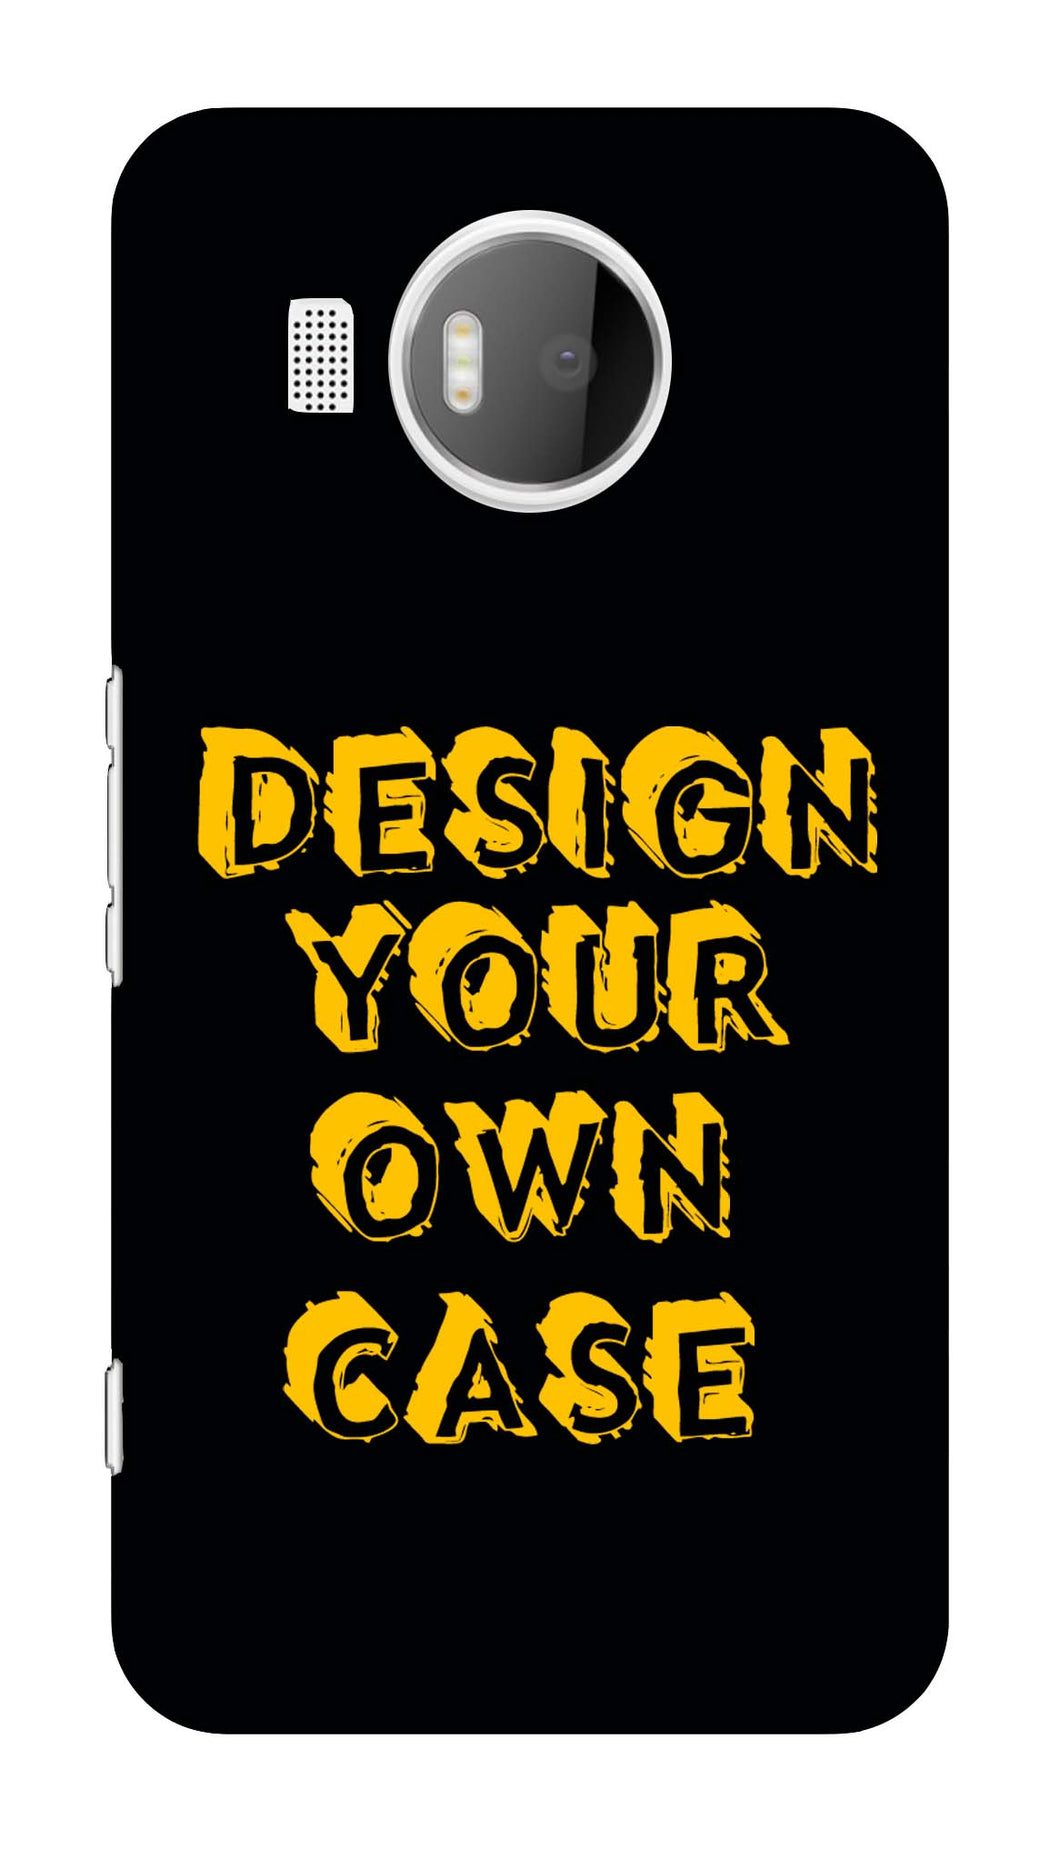 Design Your Own Case for Microsoft Lumina 950 XL